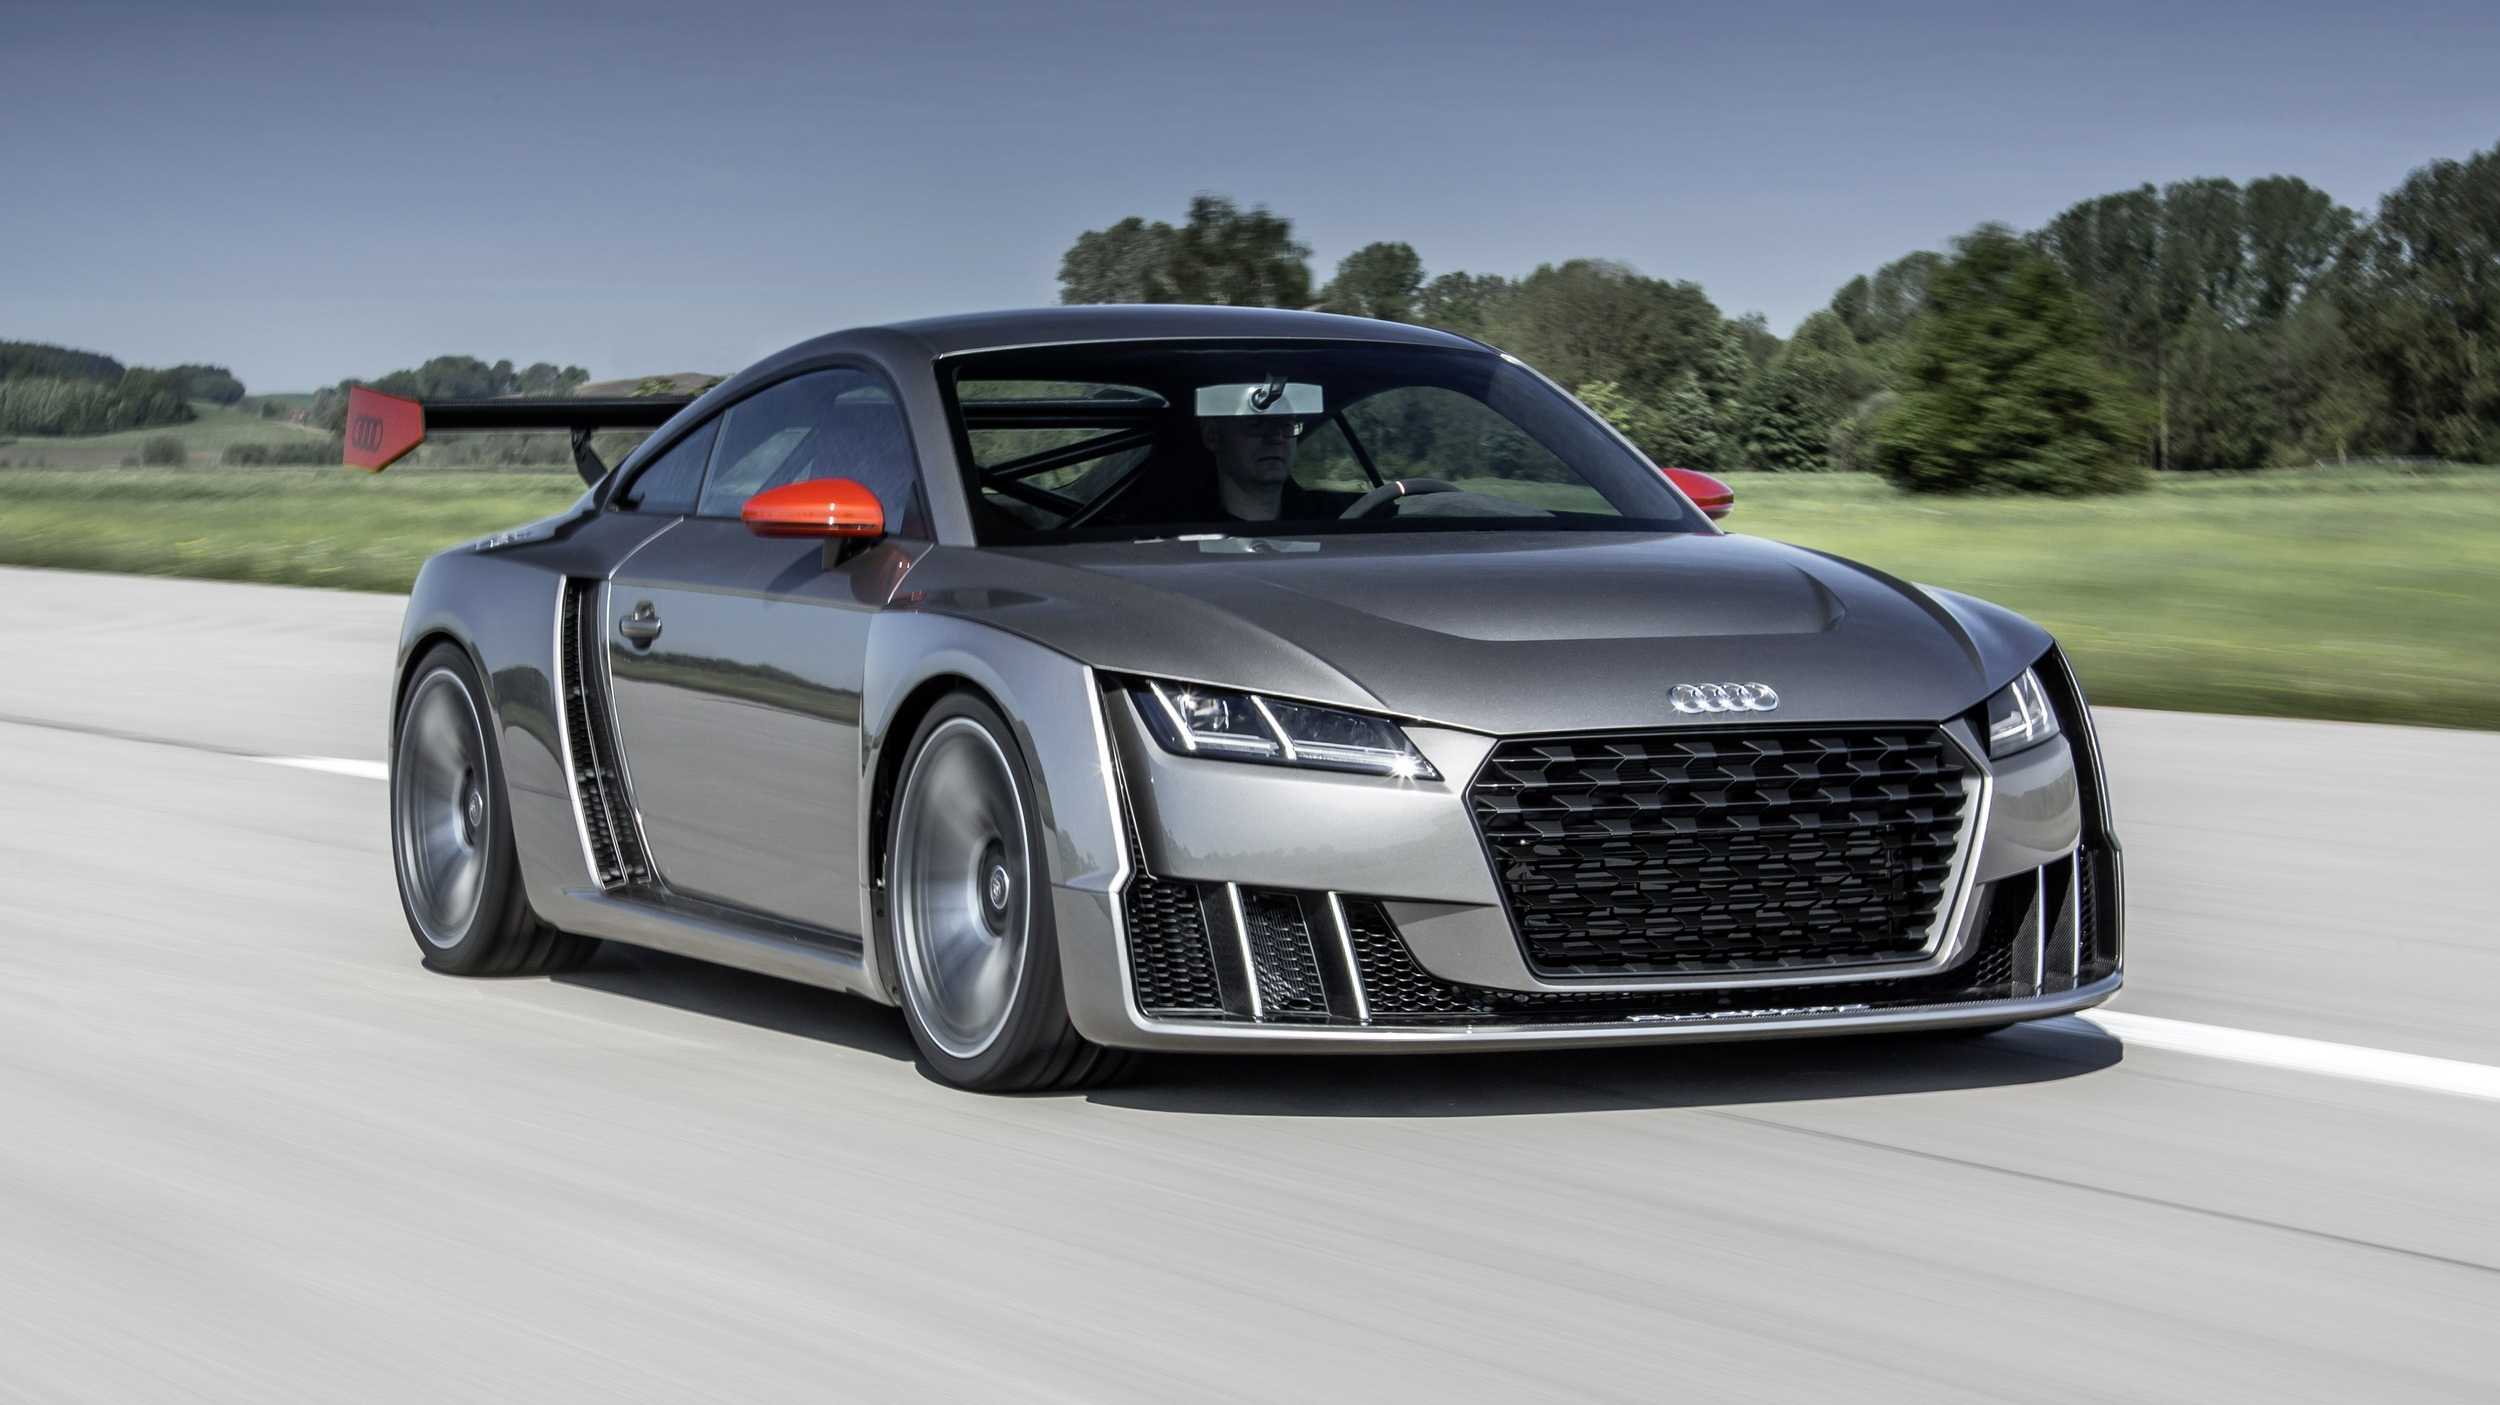 Exotic Car Wallpaper Pack 2015 Audi Tt Clubsport Turbo Technology Concept Top Speed